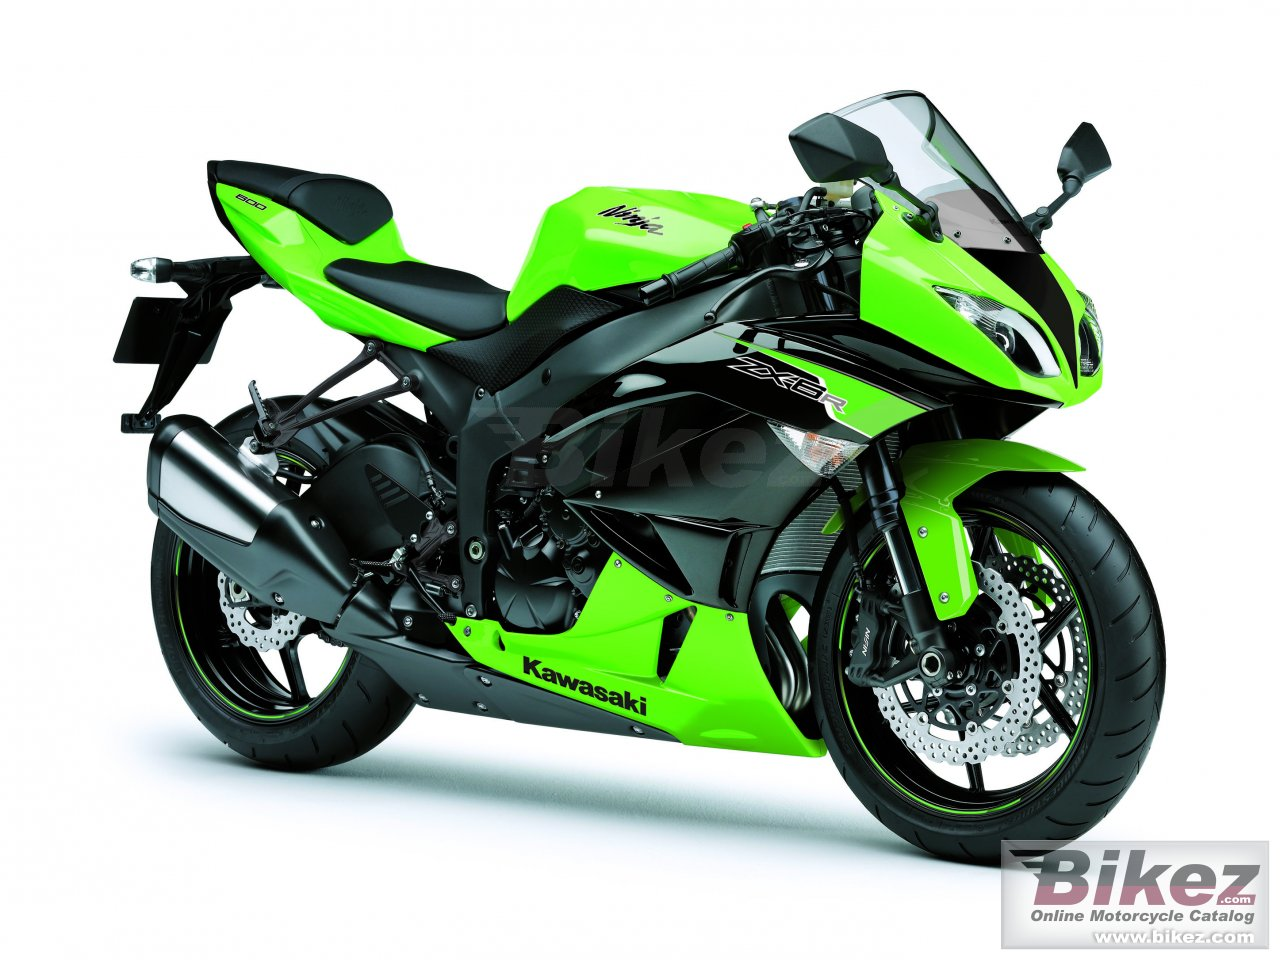 Big Kawasaki ninja zx-6r picture and wallpaper from Bikez.com